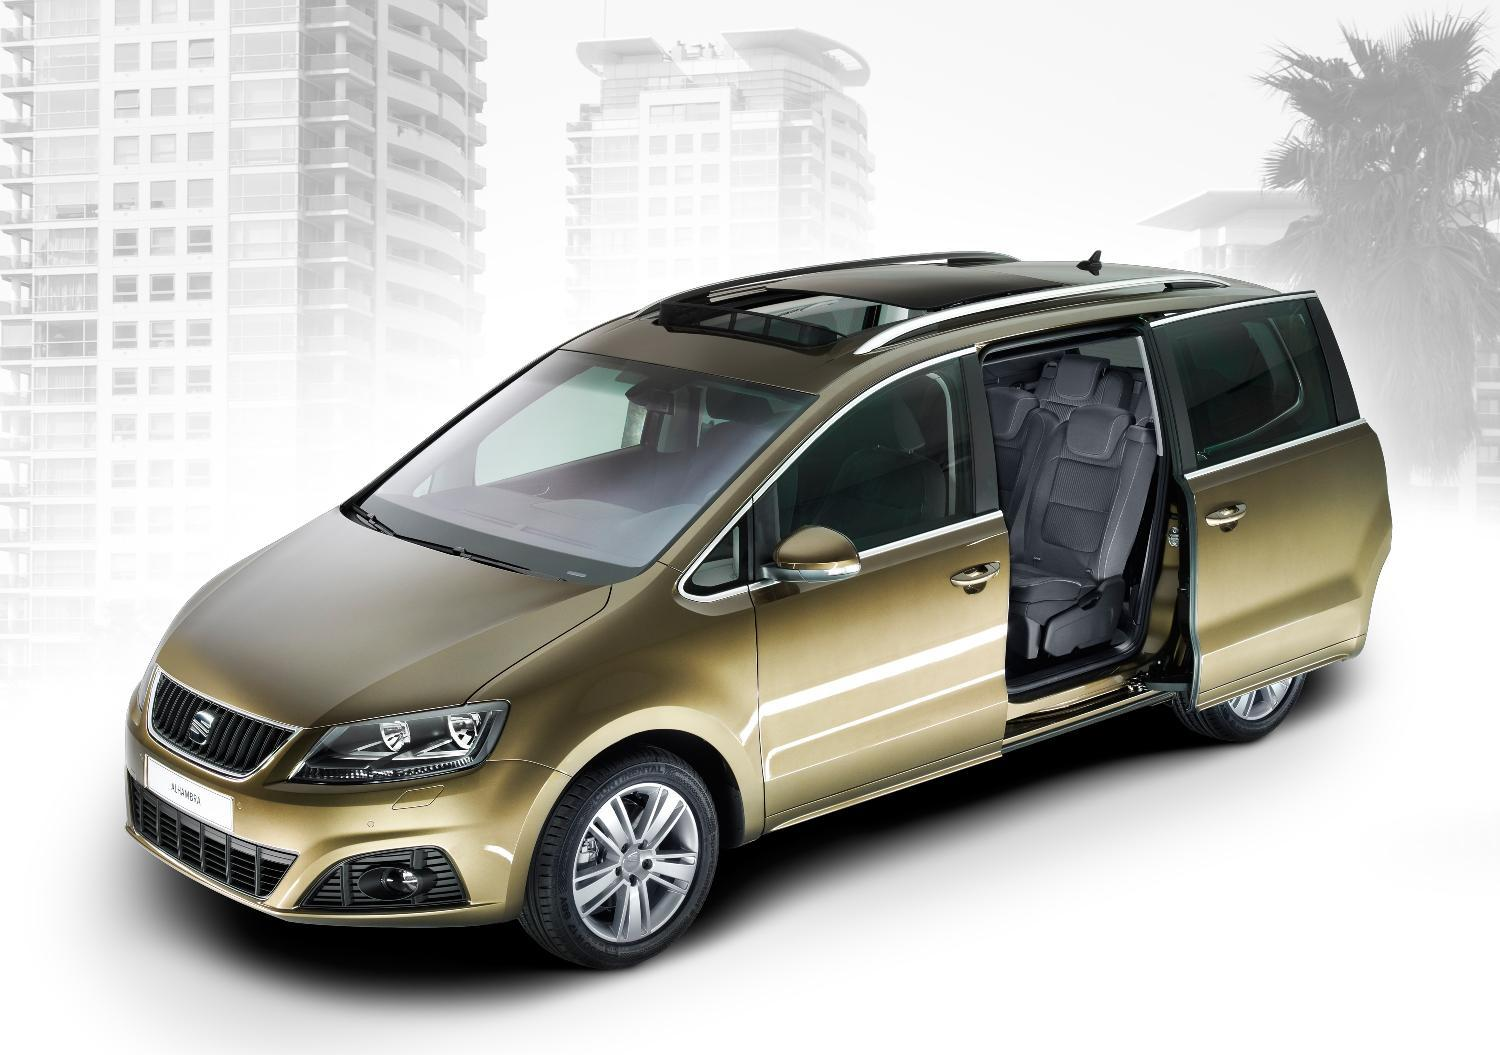 Cars With Third Row Seating >> SEAT Alhambra SE 2.0 TDI CR Ecomotive 140 PS - Car Write ...